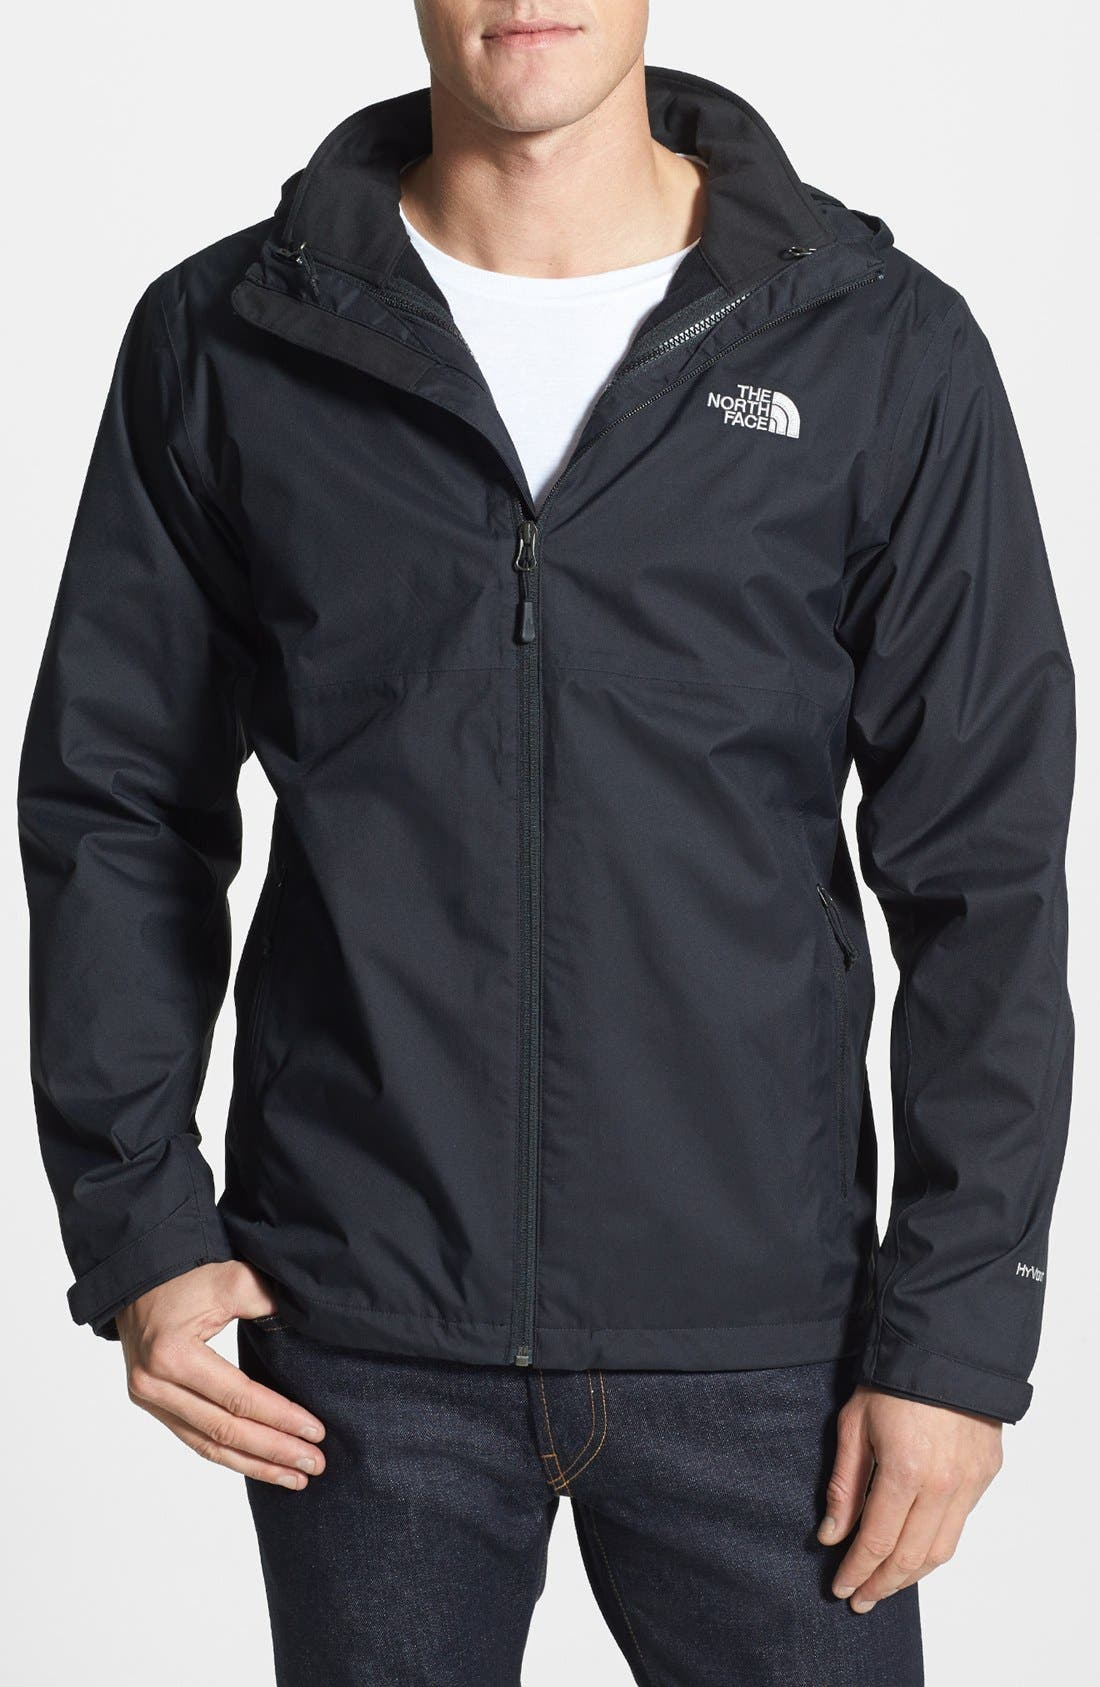 Alternate Image 1 Selected - The North Face 'Momentum TriClimate' 3-in-1 Waterproof Hooded Jacket